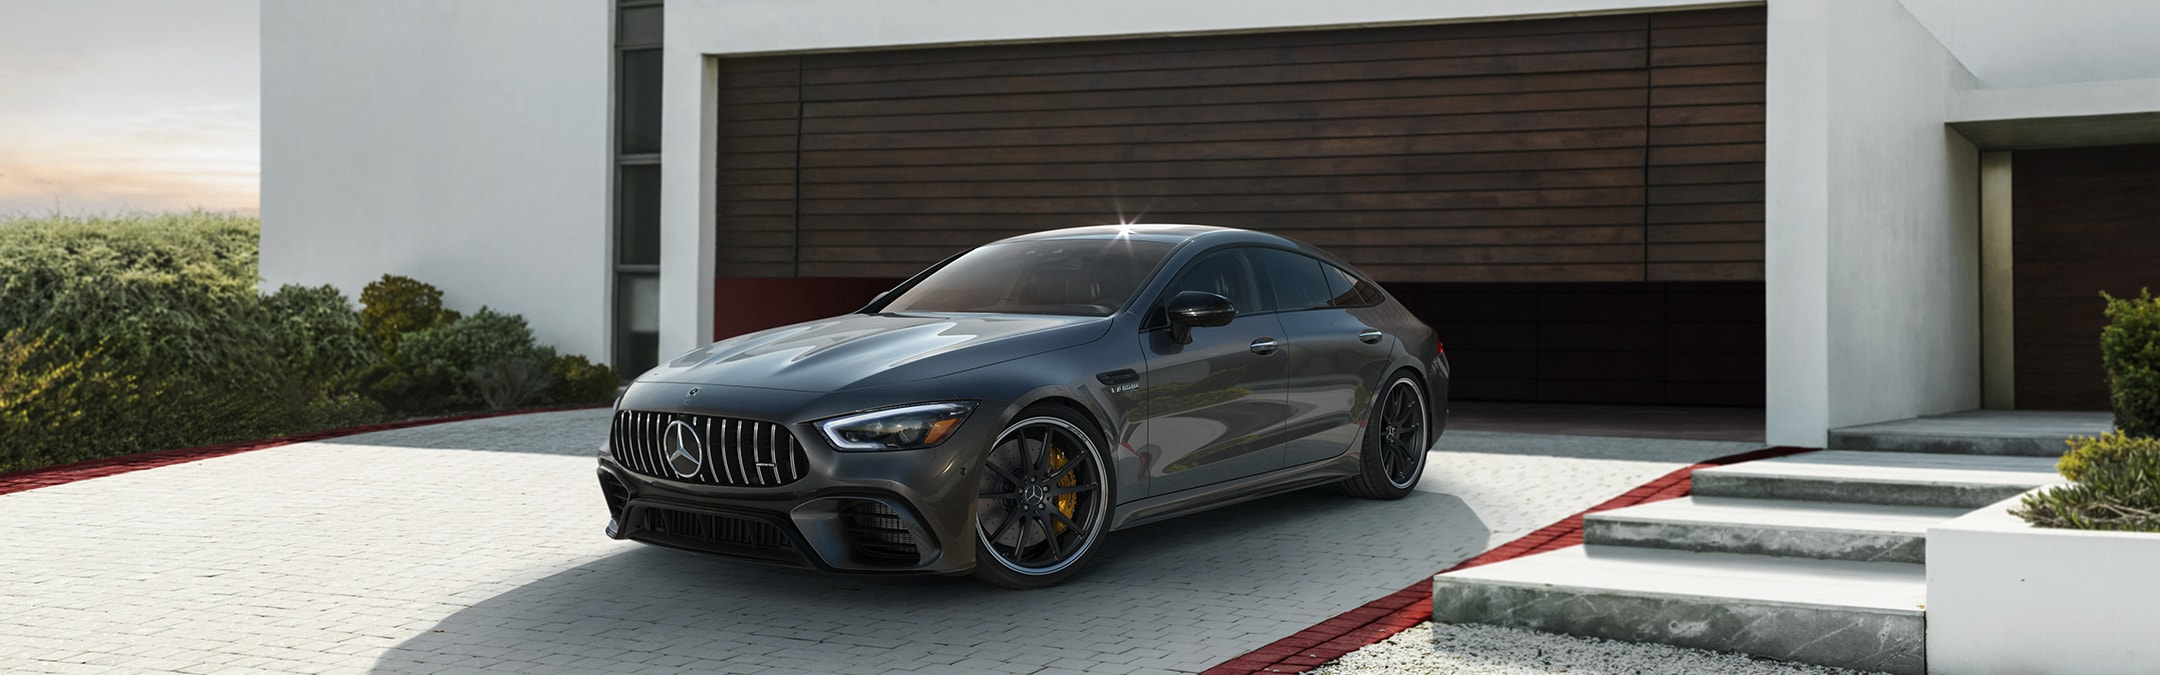 The Amg Gt 4 Door Coupe Mercedes Benz Usa